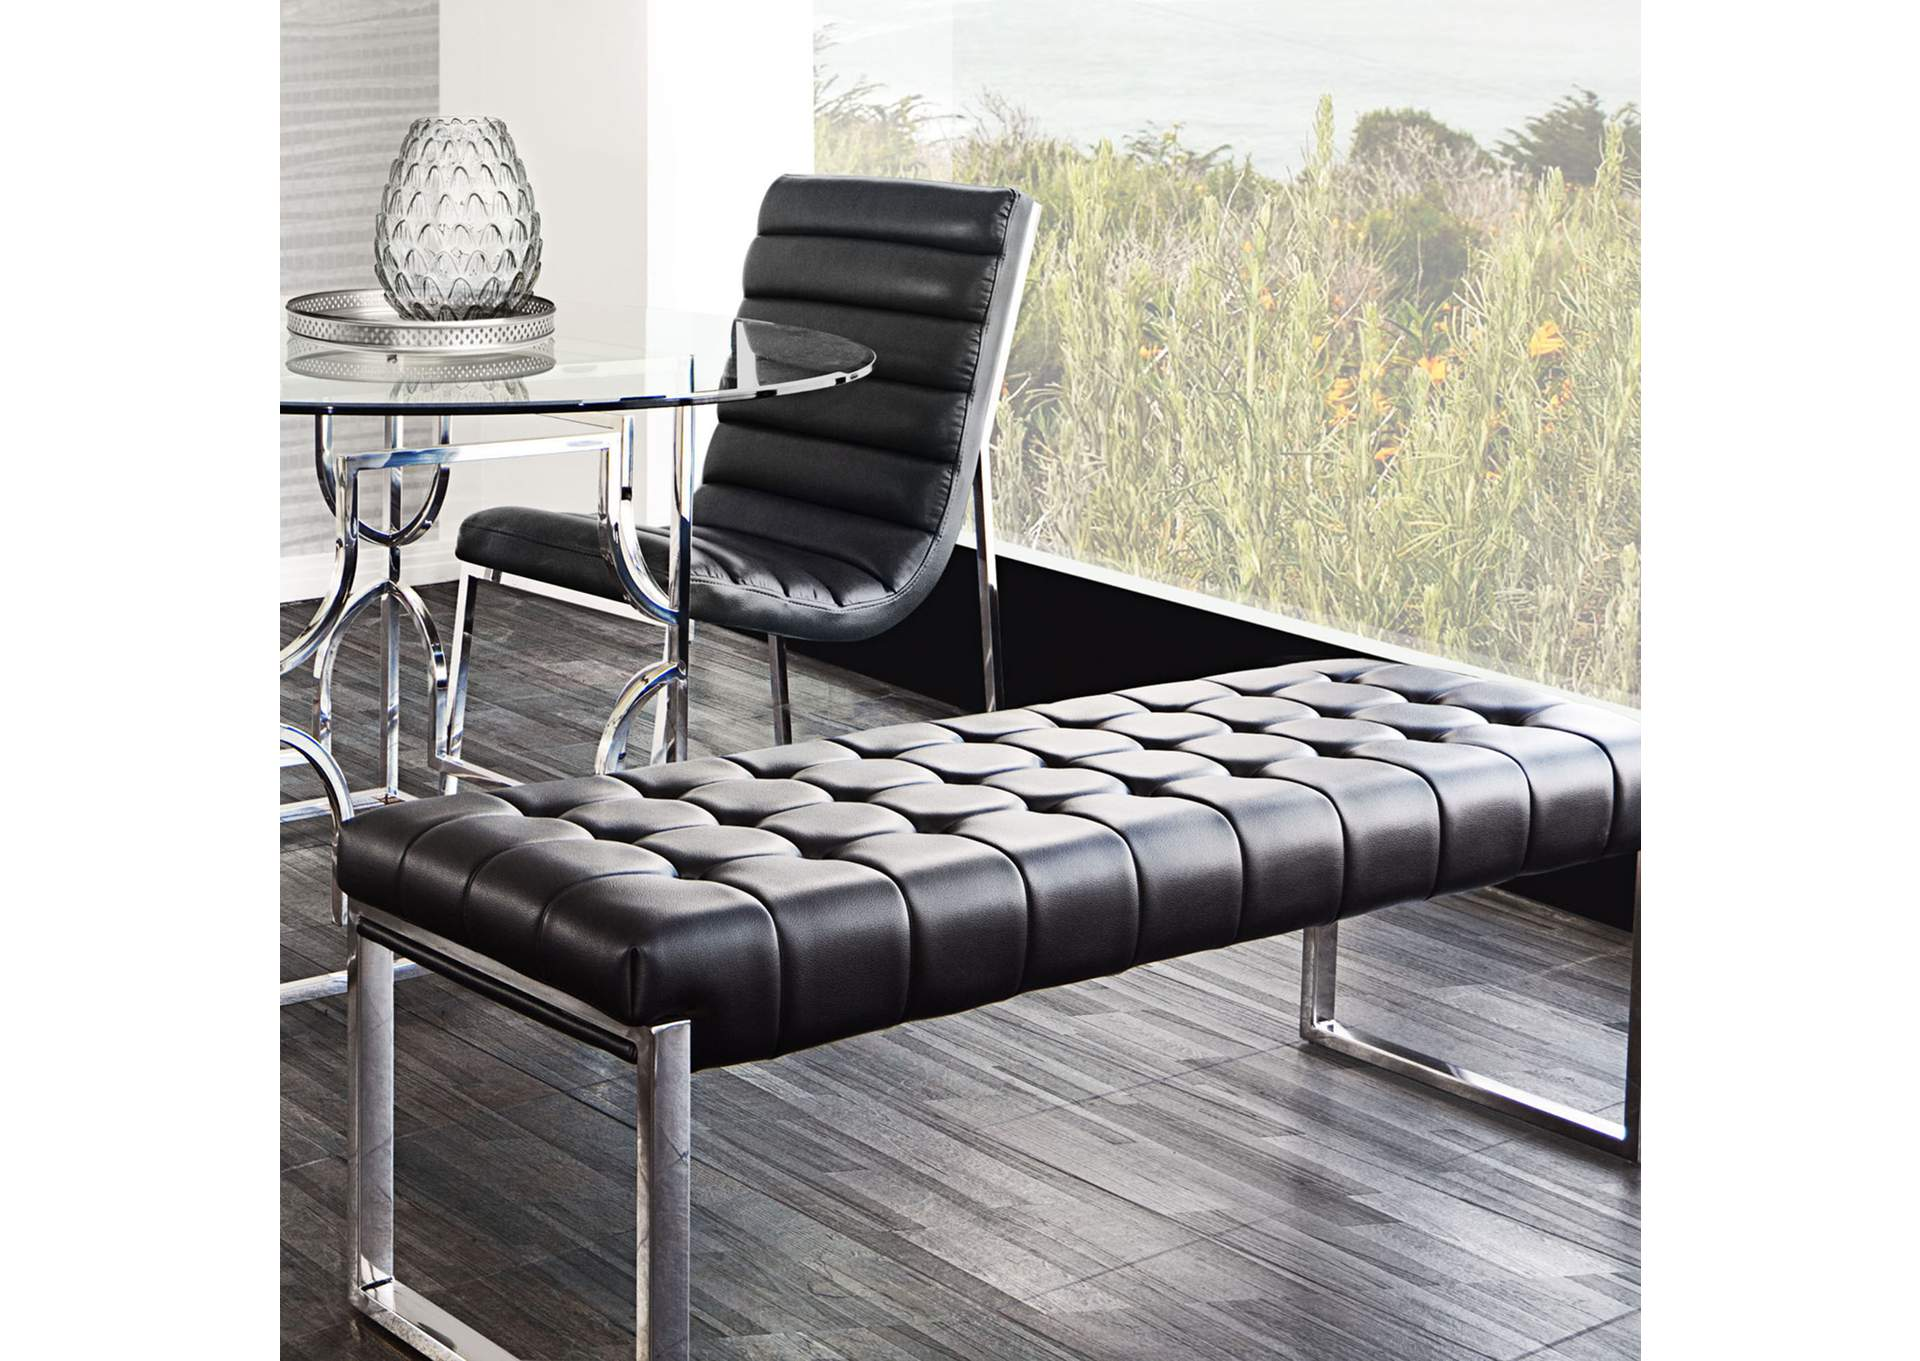 Knox Black Backless Tufted Bench w/ Stainless Steel Frame,Diamond Sofa